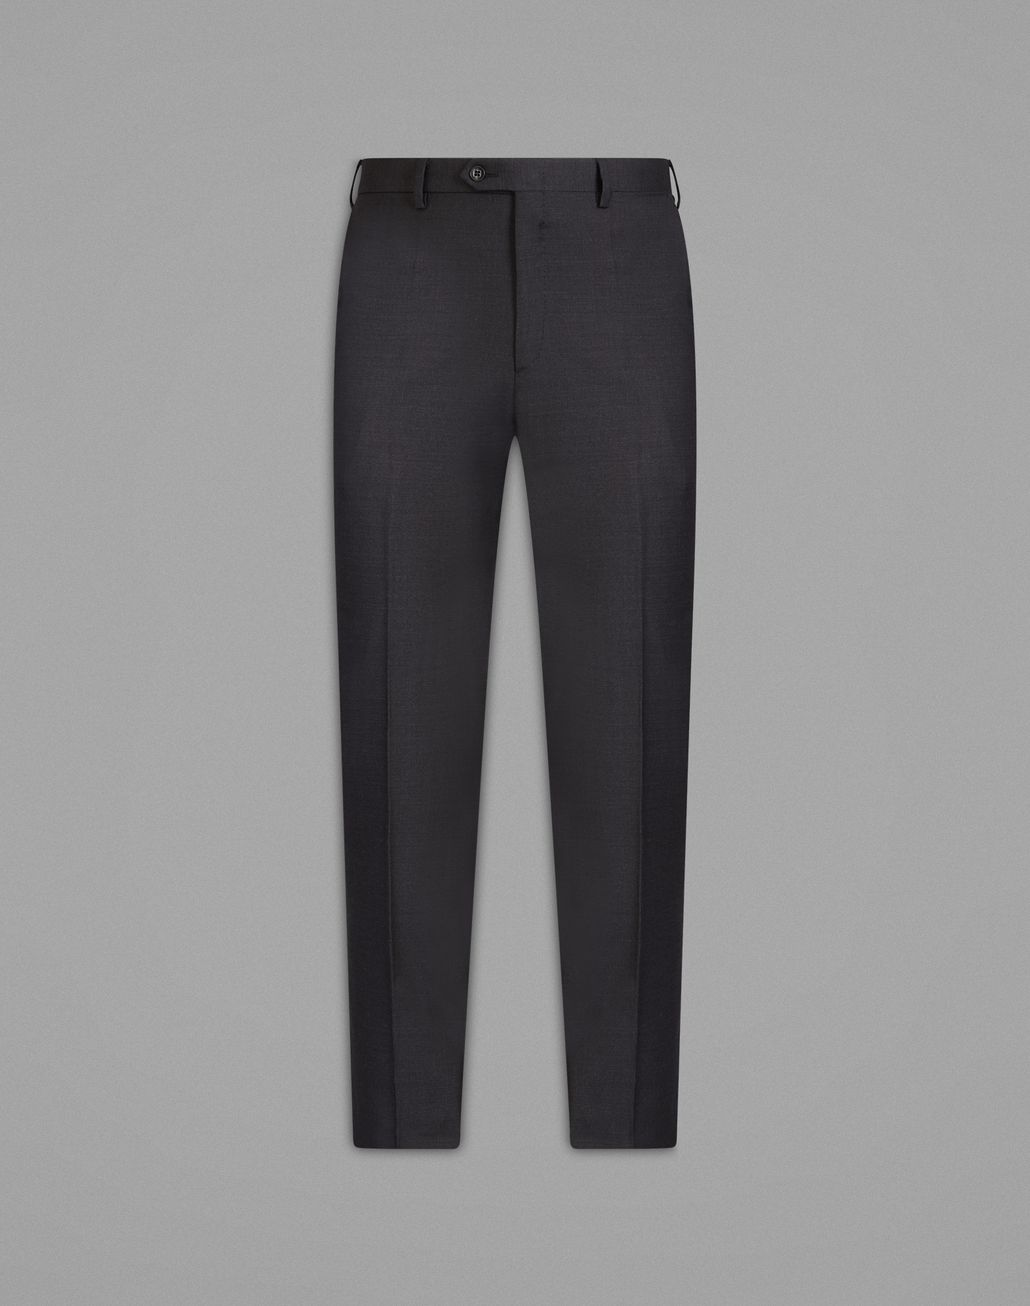 BRIONI  'Essential' Grey Tigullio Trousers Trousers Man f